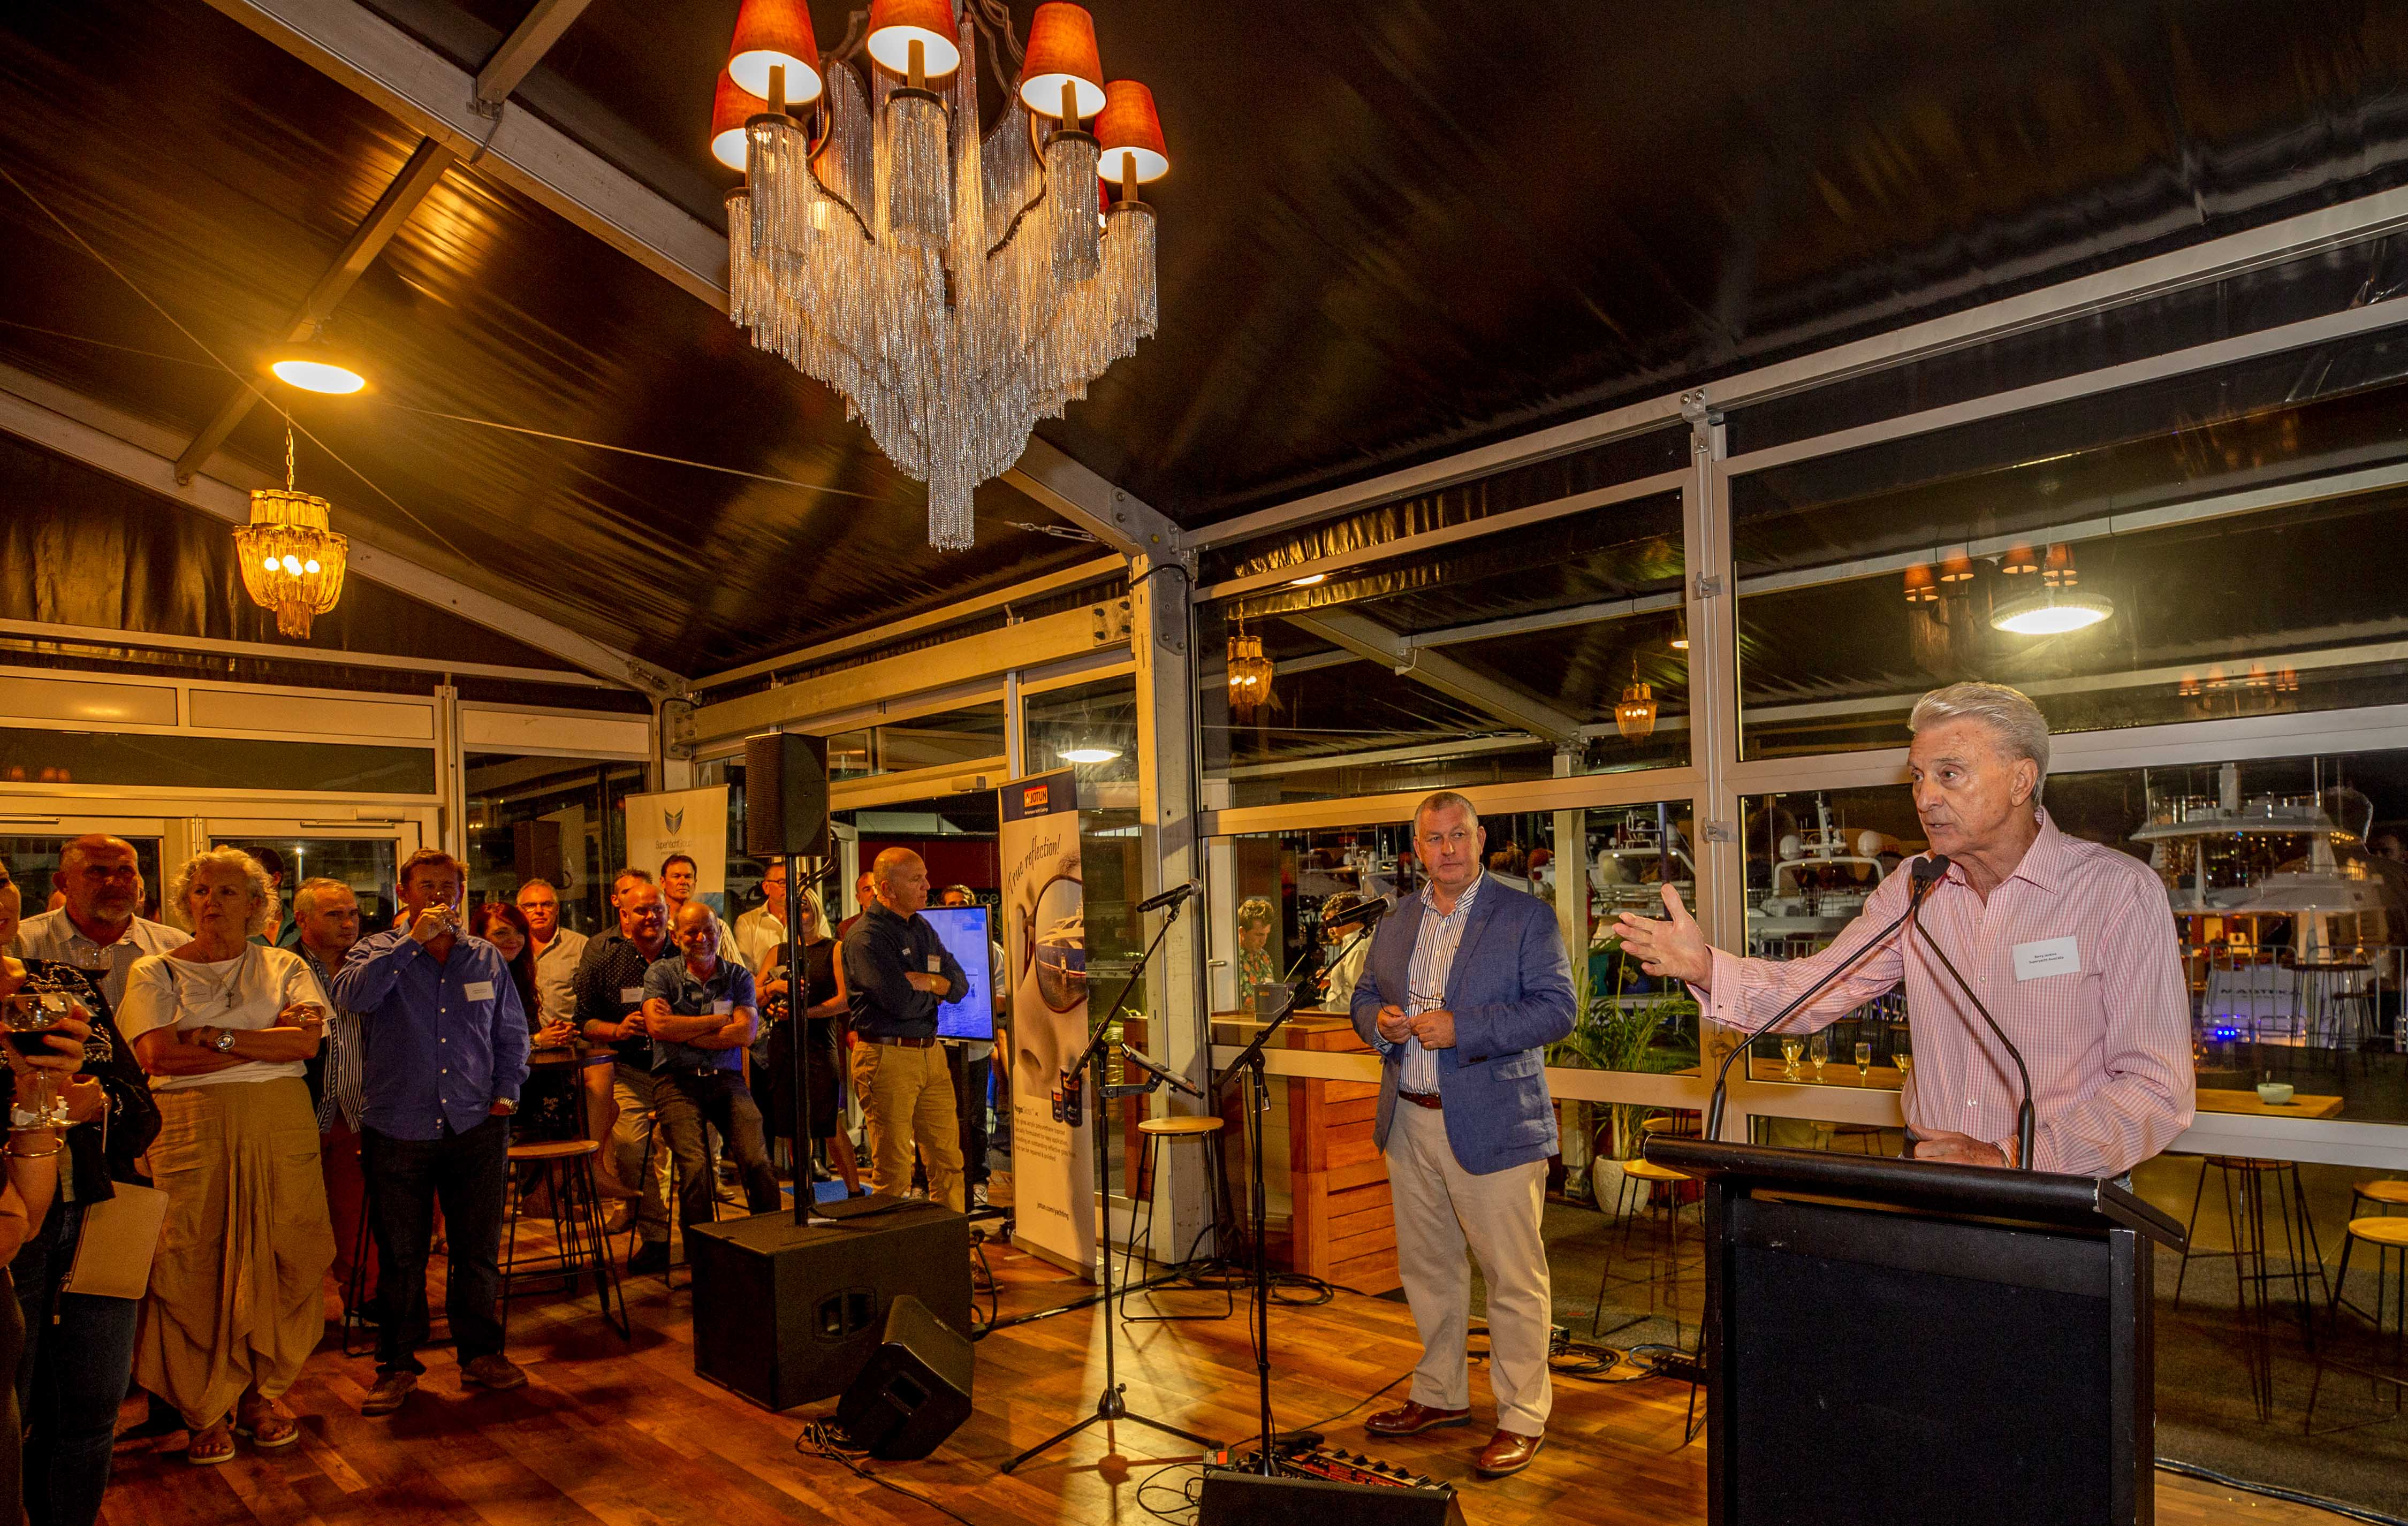 The Australian Superyacht Rendezvous networking events